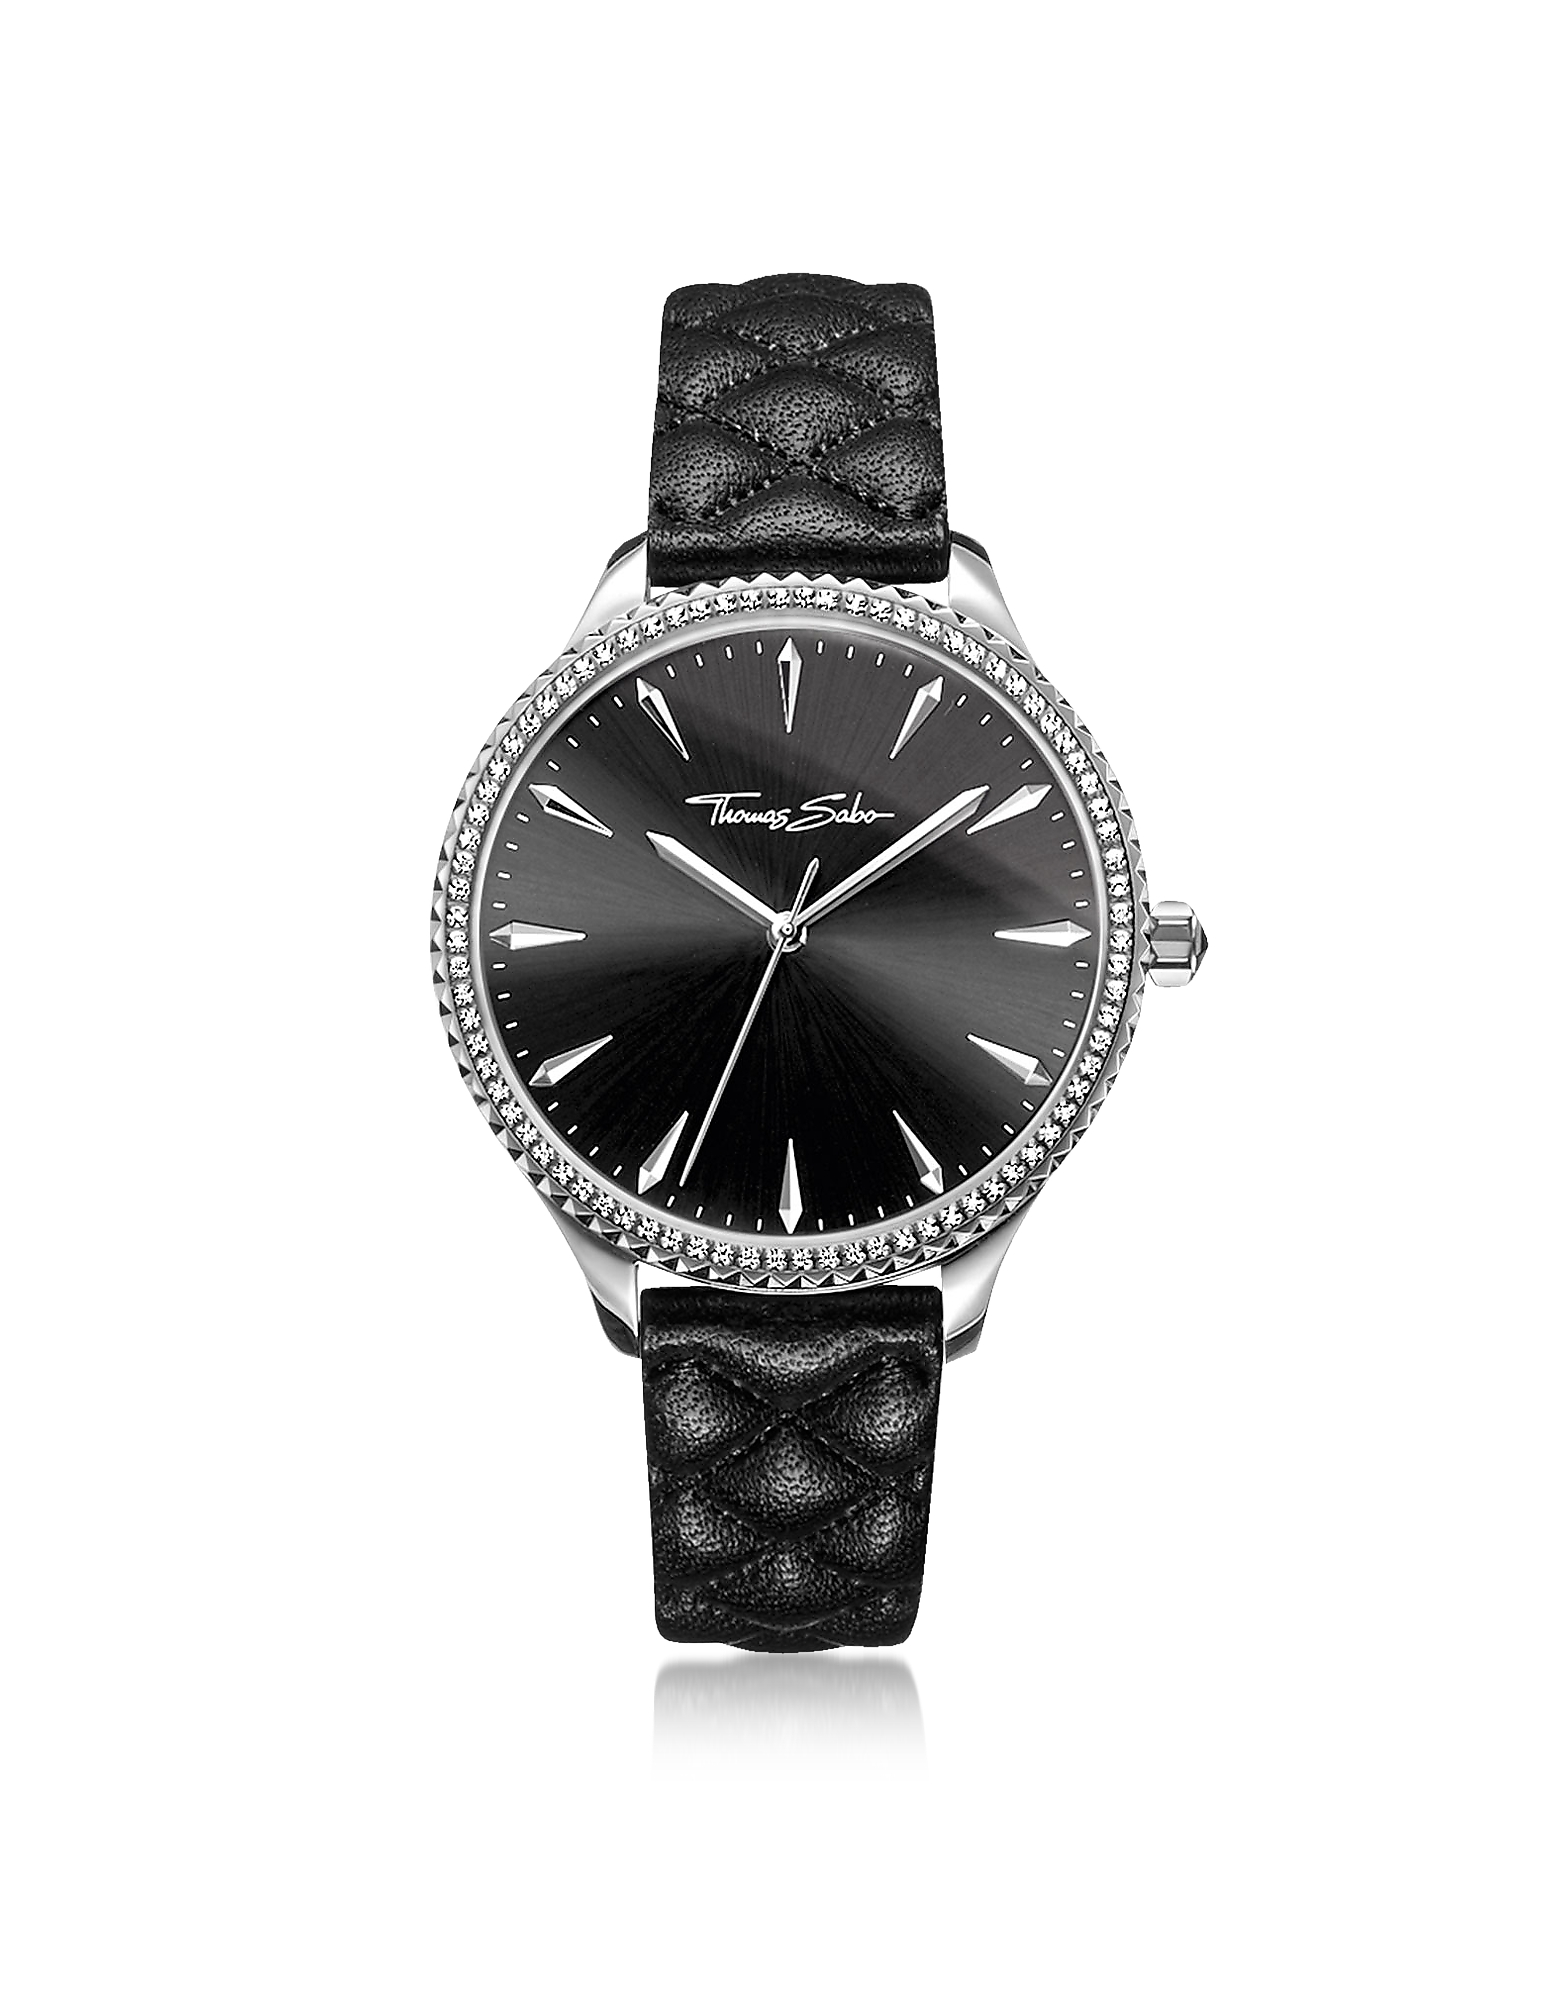 Rebel at Heart Silver Stainless Steel and Black Quilted Leather Strap Women's Watch w/Crystals